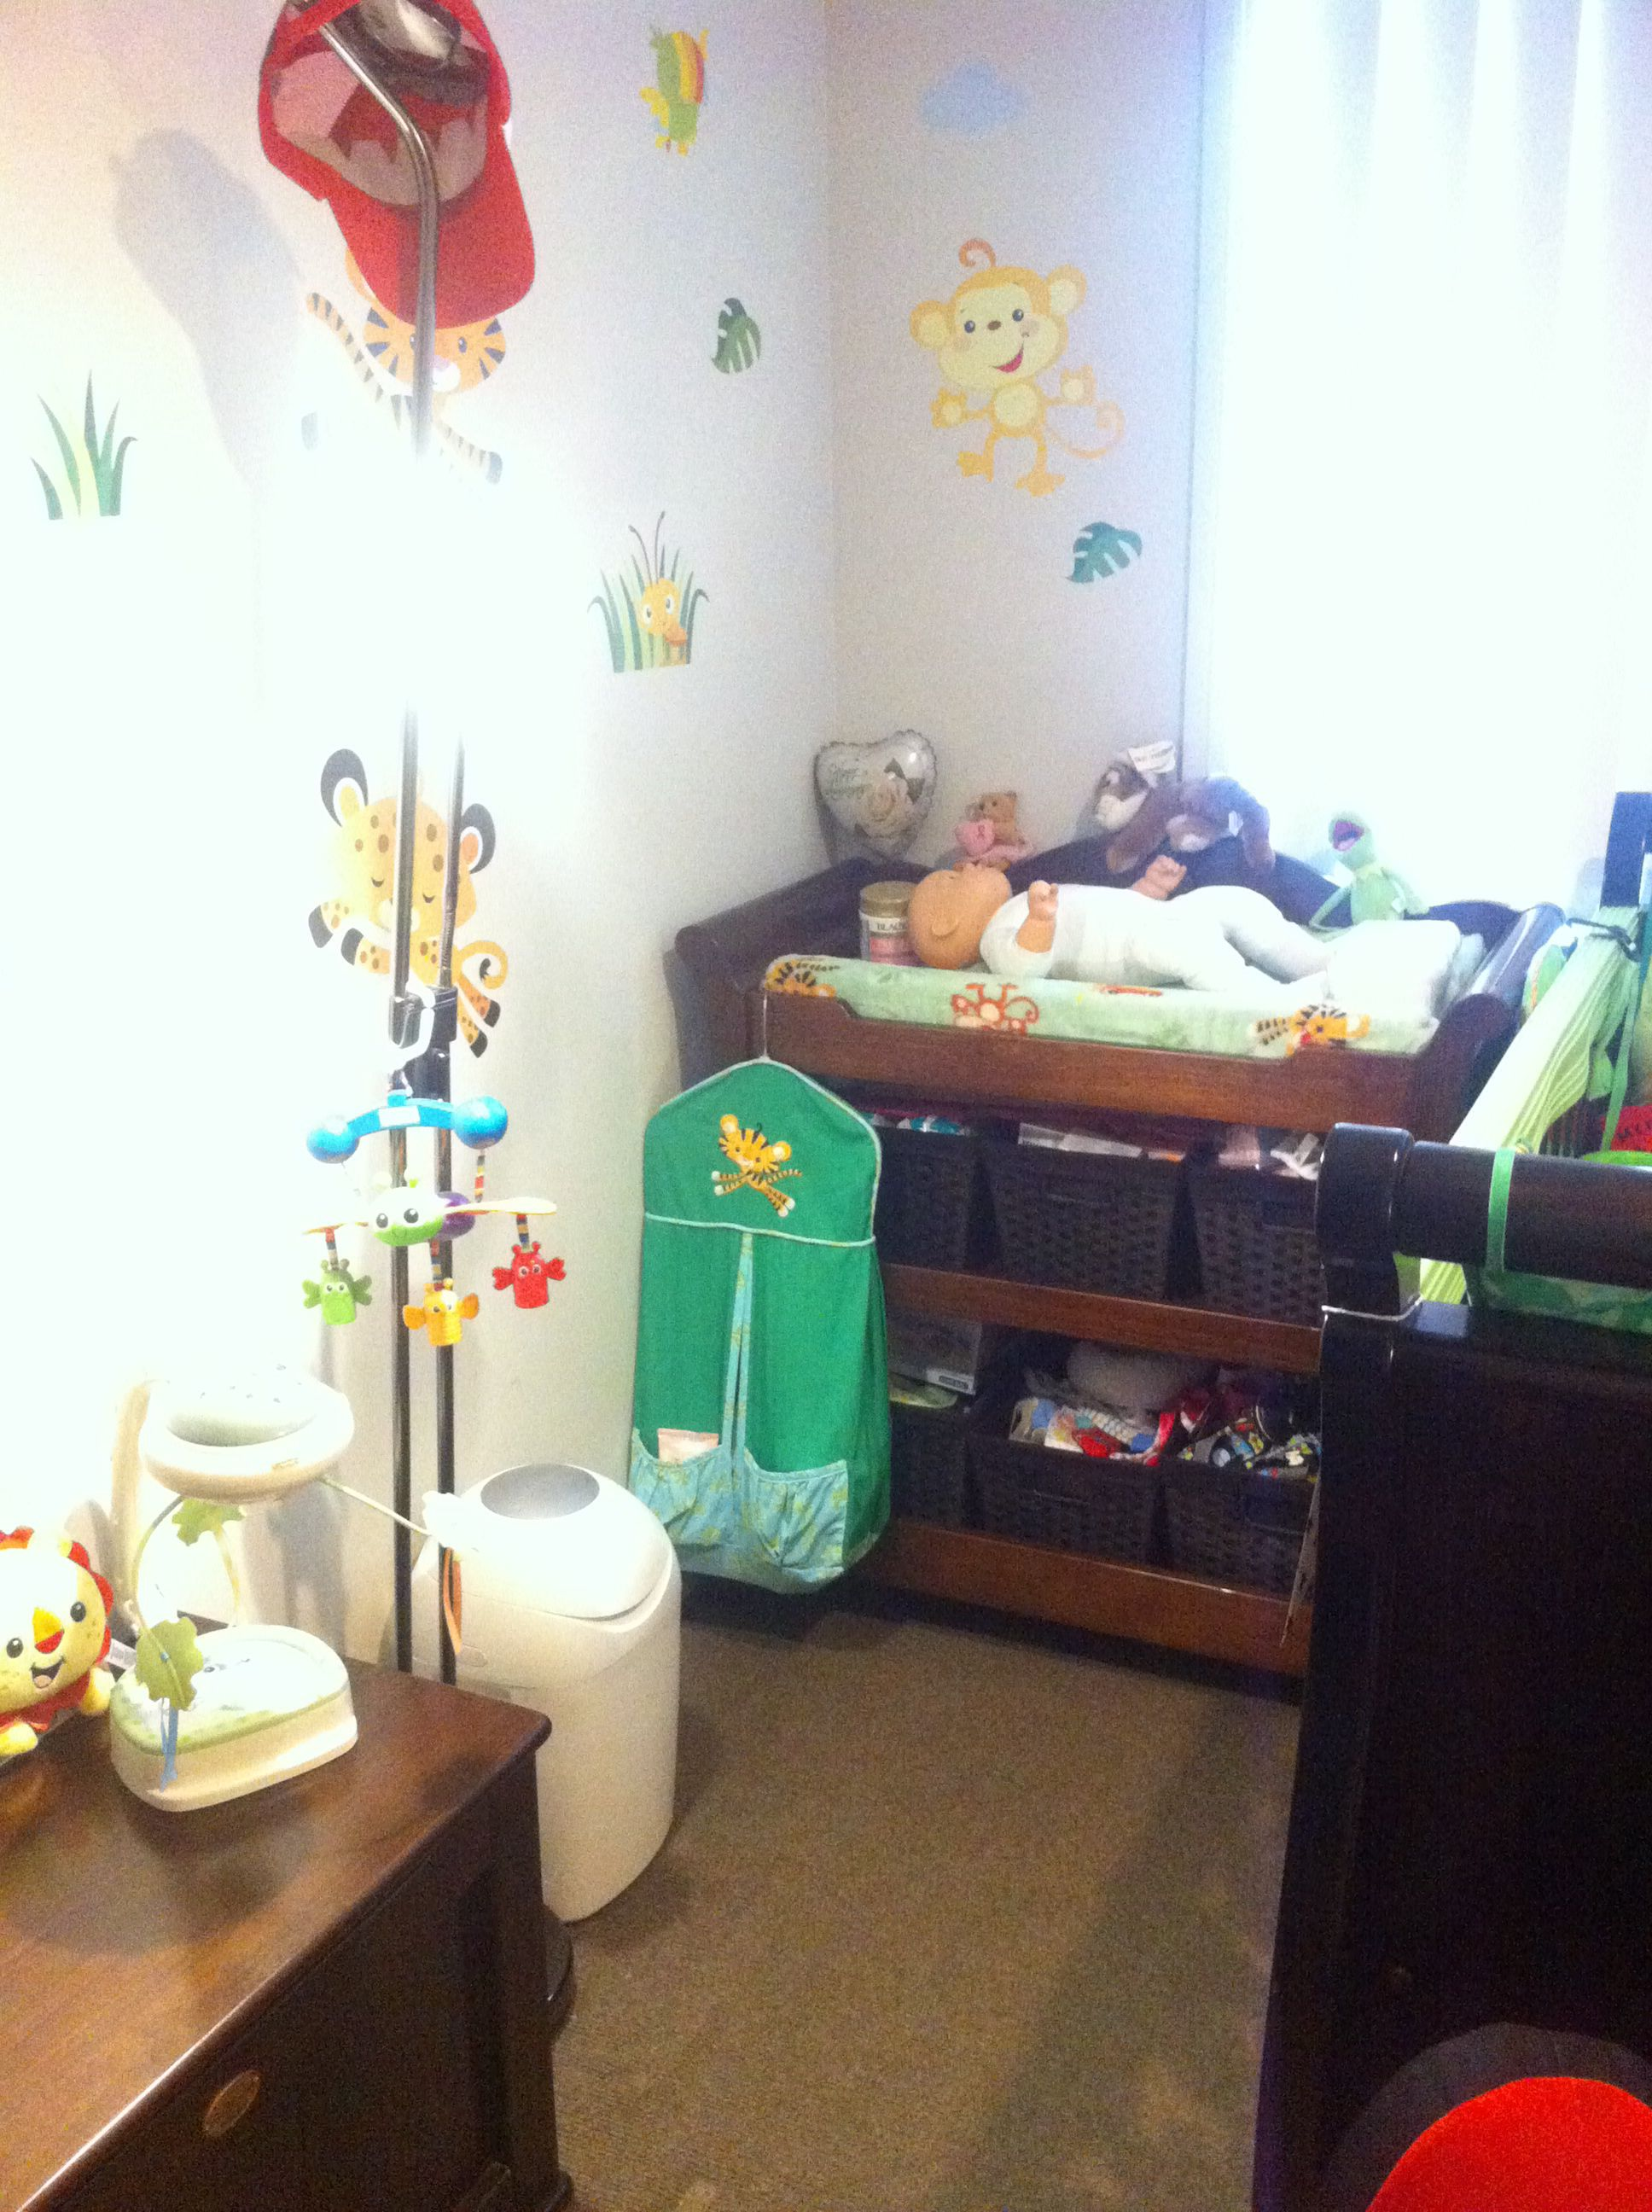 Our Fisher Price Rainforest Nursery